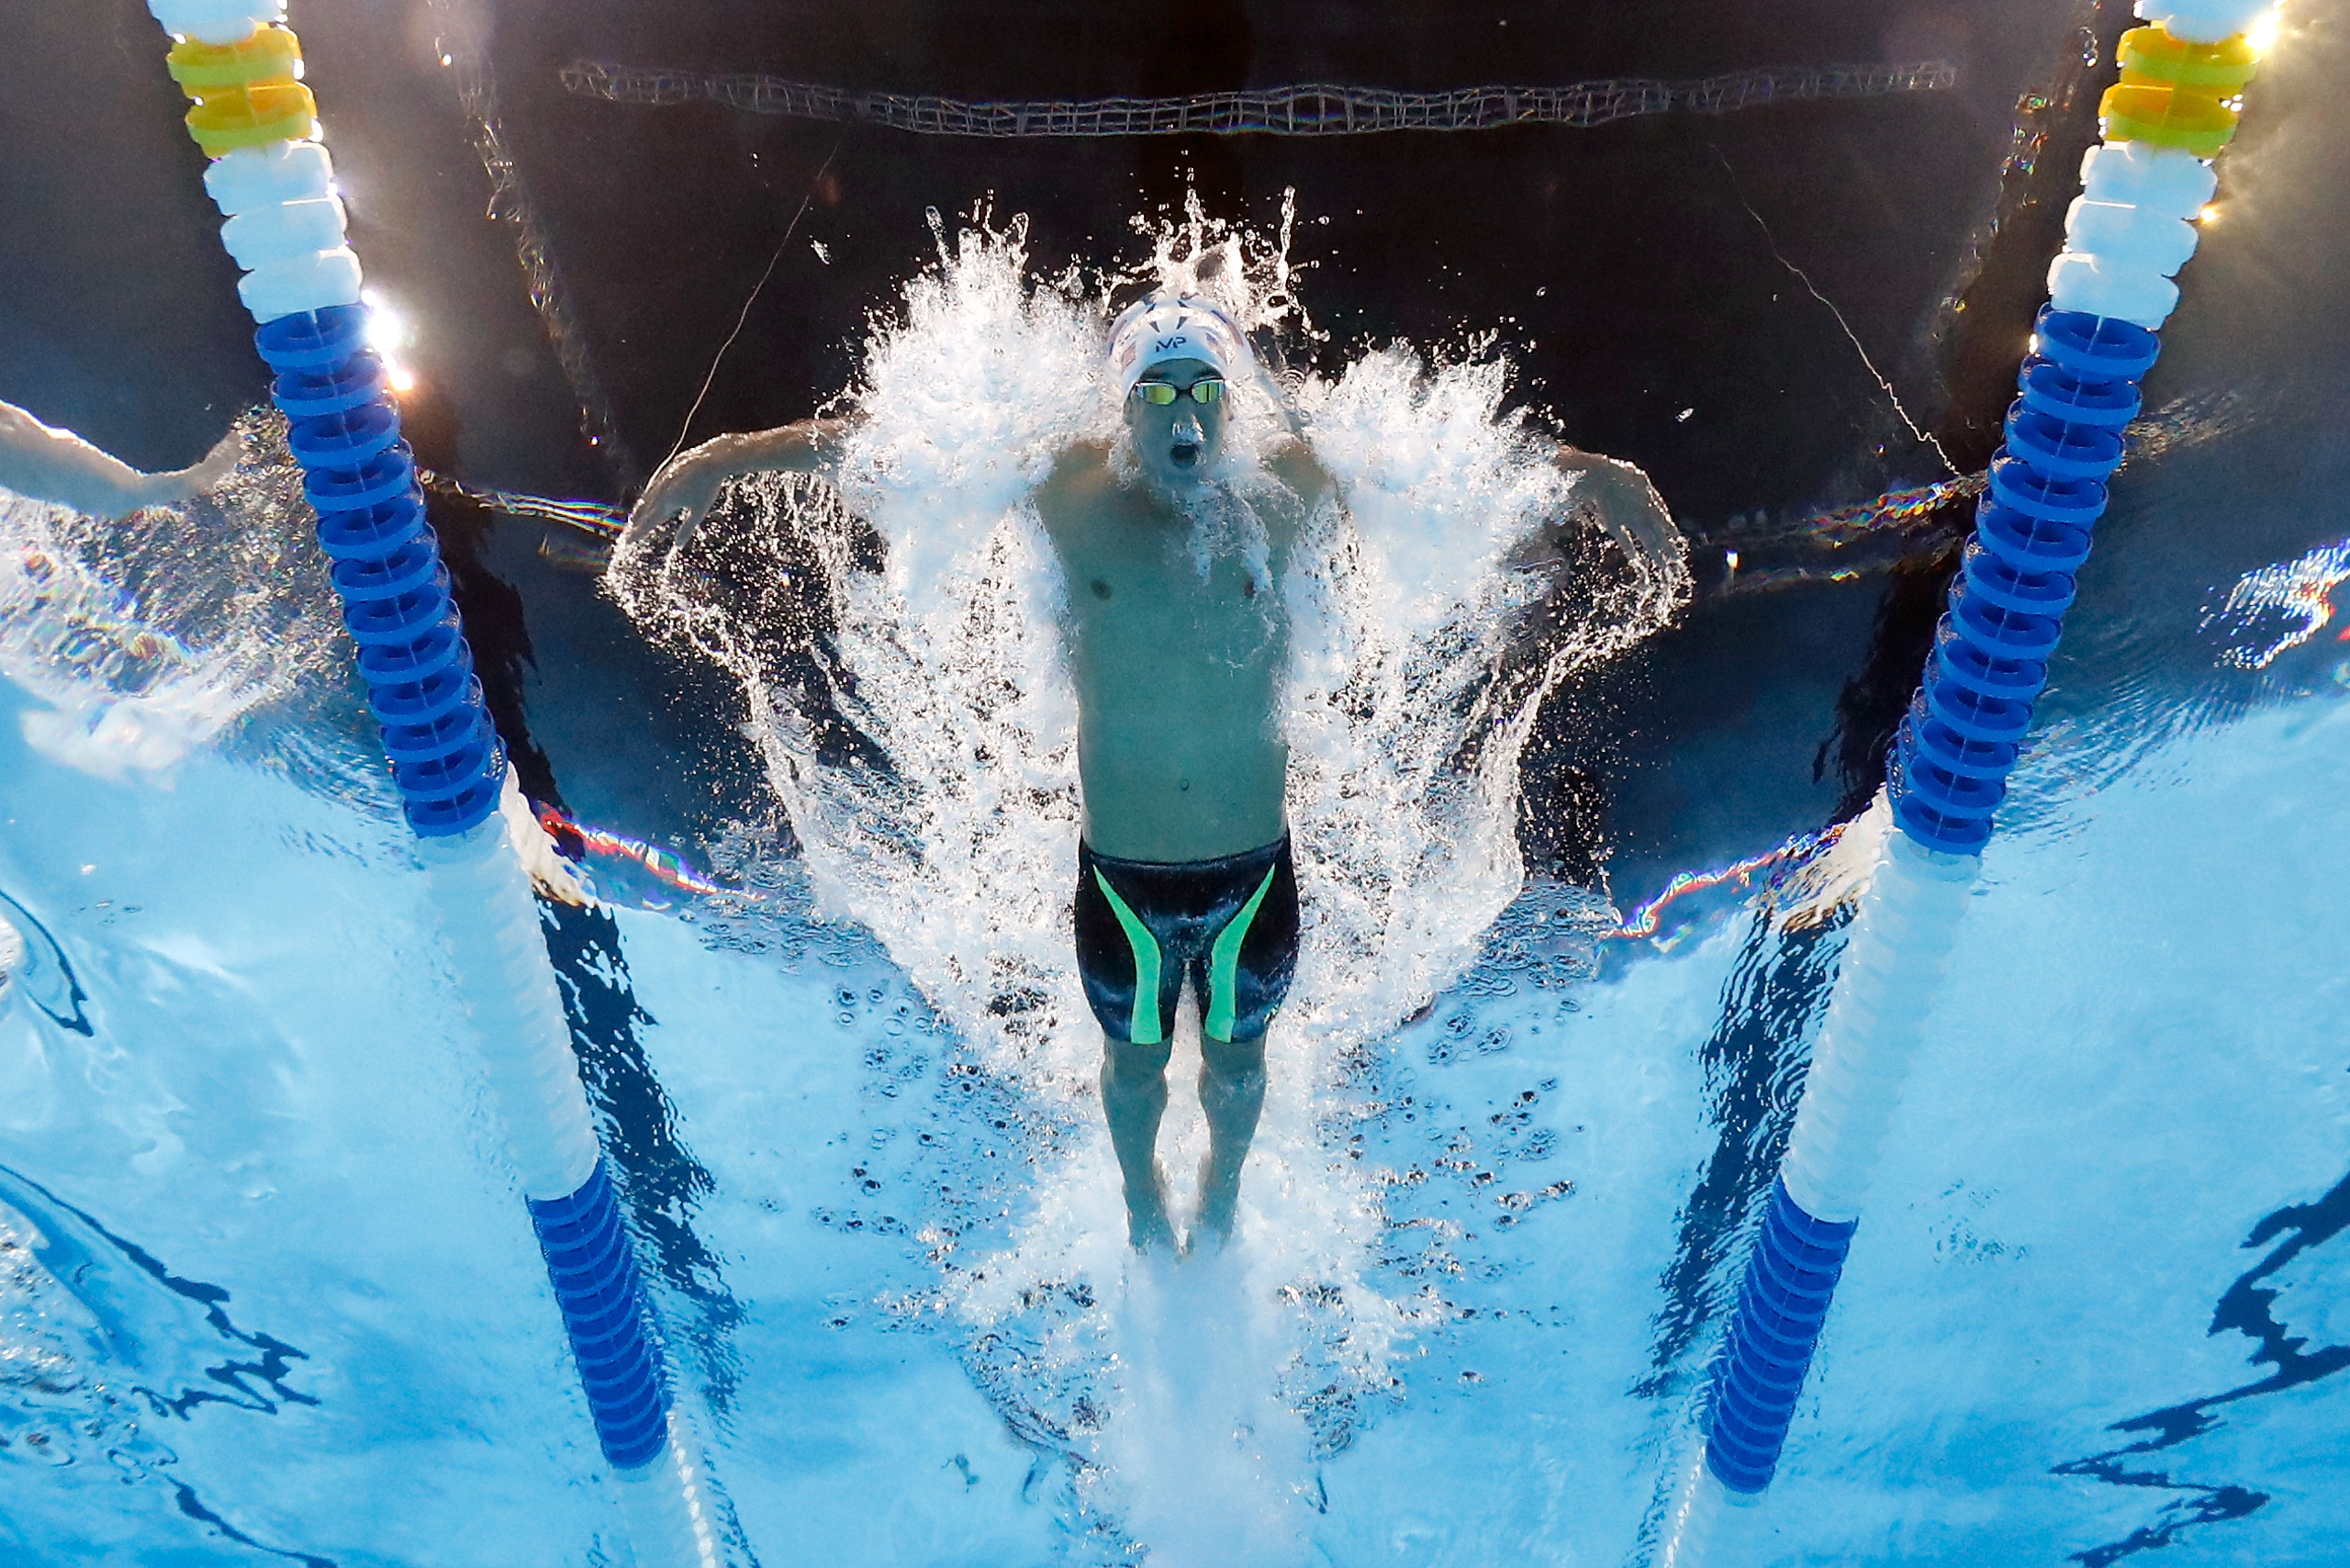 """<strong>Michael Phelps, Swimming, USA</strong>The most decorated Olympian of all time feels he still has something to prove. After his historic eight gold medals in 2008, Phelps struggled to find a life outside the pool. While his body carried him to six more medals in 2012, his mind wasn't in it. He was arrested for drunk driving in 2014, leading to a stint in rehab––and a renewed sense of purpose. """"I tried to bite off more than I could handle in 2012, but I want to be here now,"""" Phelps says. Now engaged, with a nearly 3-month-old son, Phelps sees Rio as a chance to bring his soul back to swimming; he'll race in the 100-m and 200-m fly and the 200-m individual medley as well as some relays. Expect these Games to bring his storybook career to a fitting close. —A.P."""